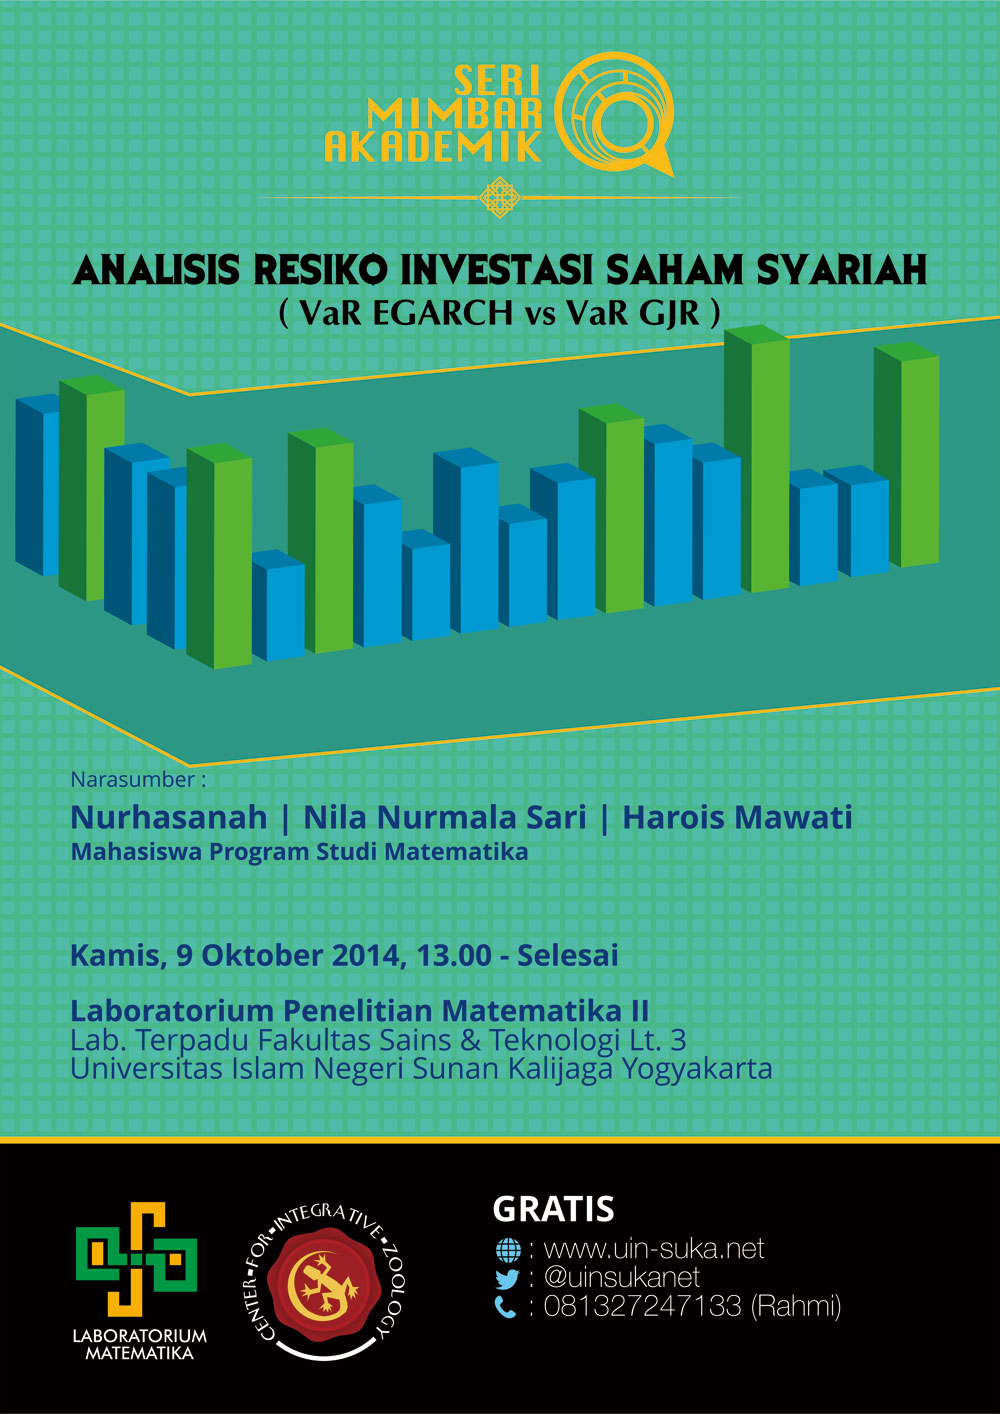 seri mimbar akademik analisis resiko investasi saham syariah var egarch vs var gjr- uin-suka net – laboratorium matematika – center for integrative zoology